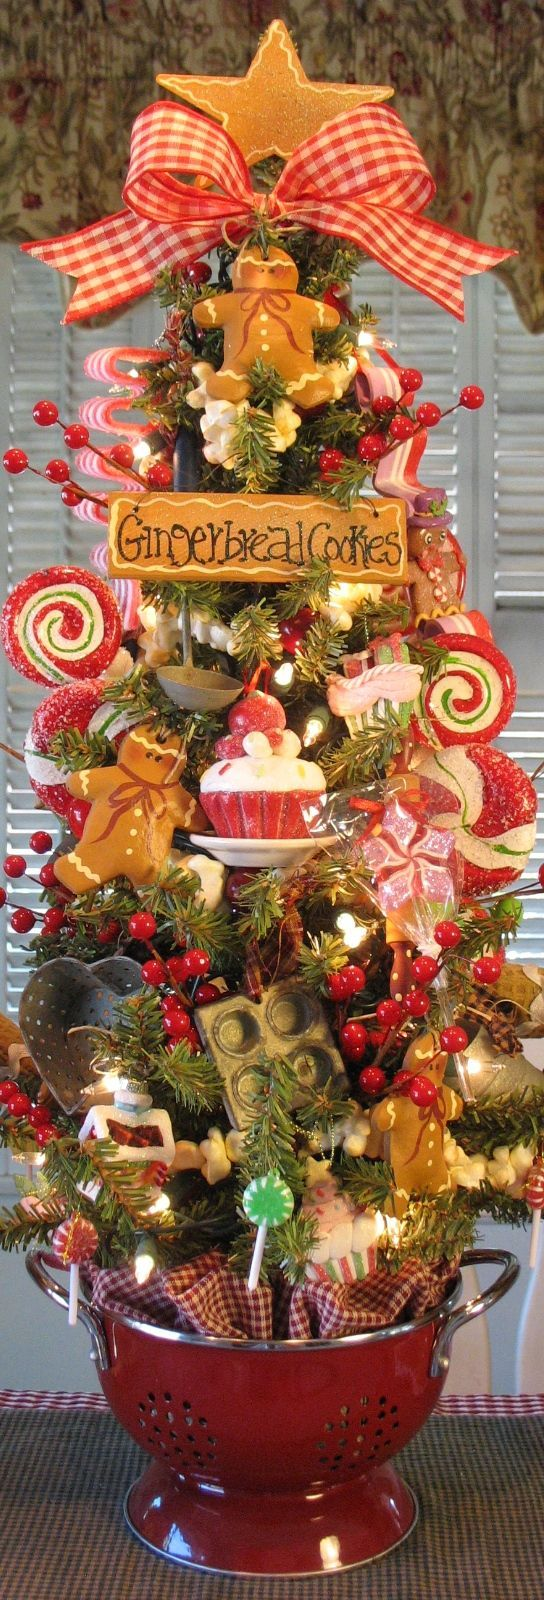 Albero Di Natale Kitchen.Gingerbread Sweets Cupcakes And Popcorn Garland Kitchen Tree Con Imagenes Navidad Navidad Magica Decoracion Navidad